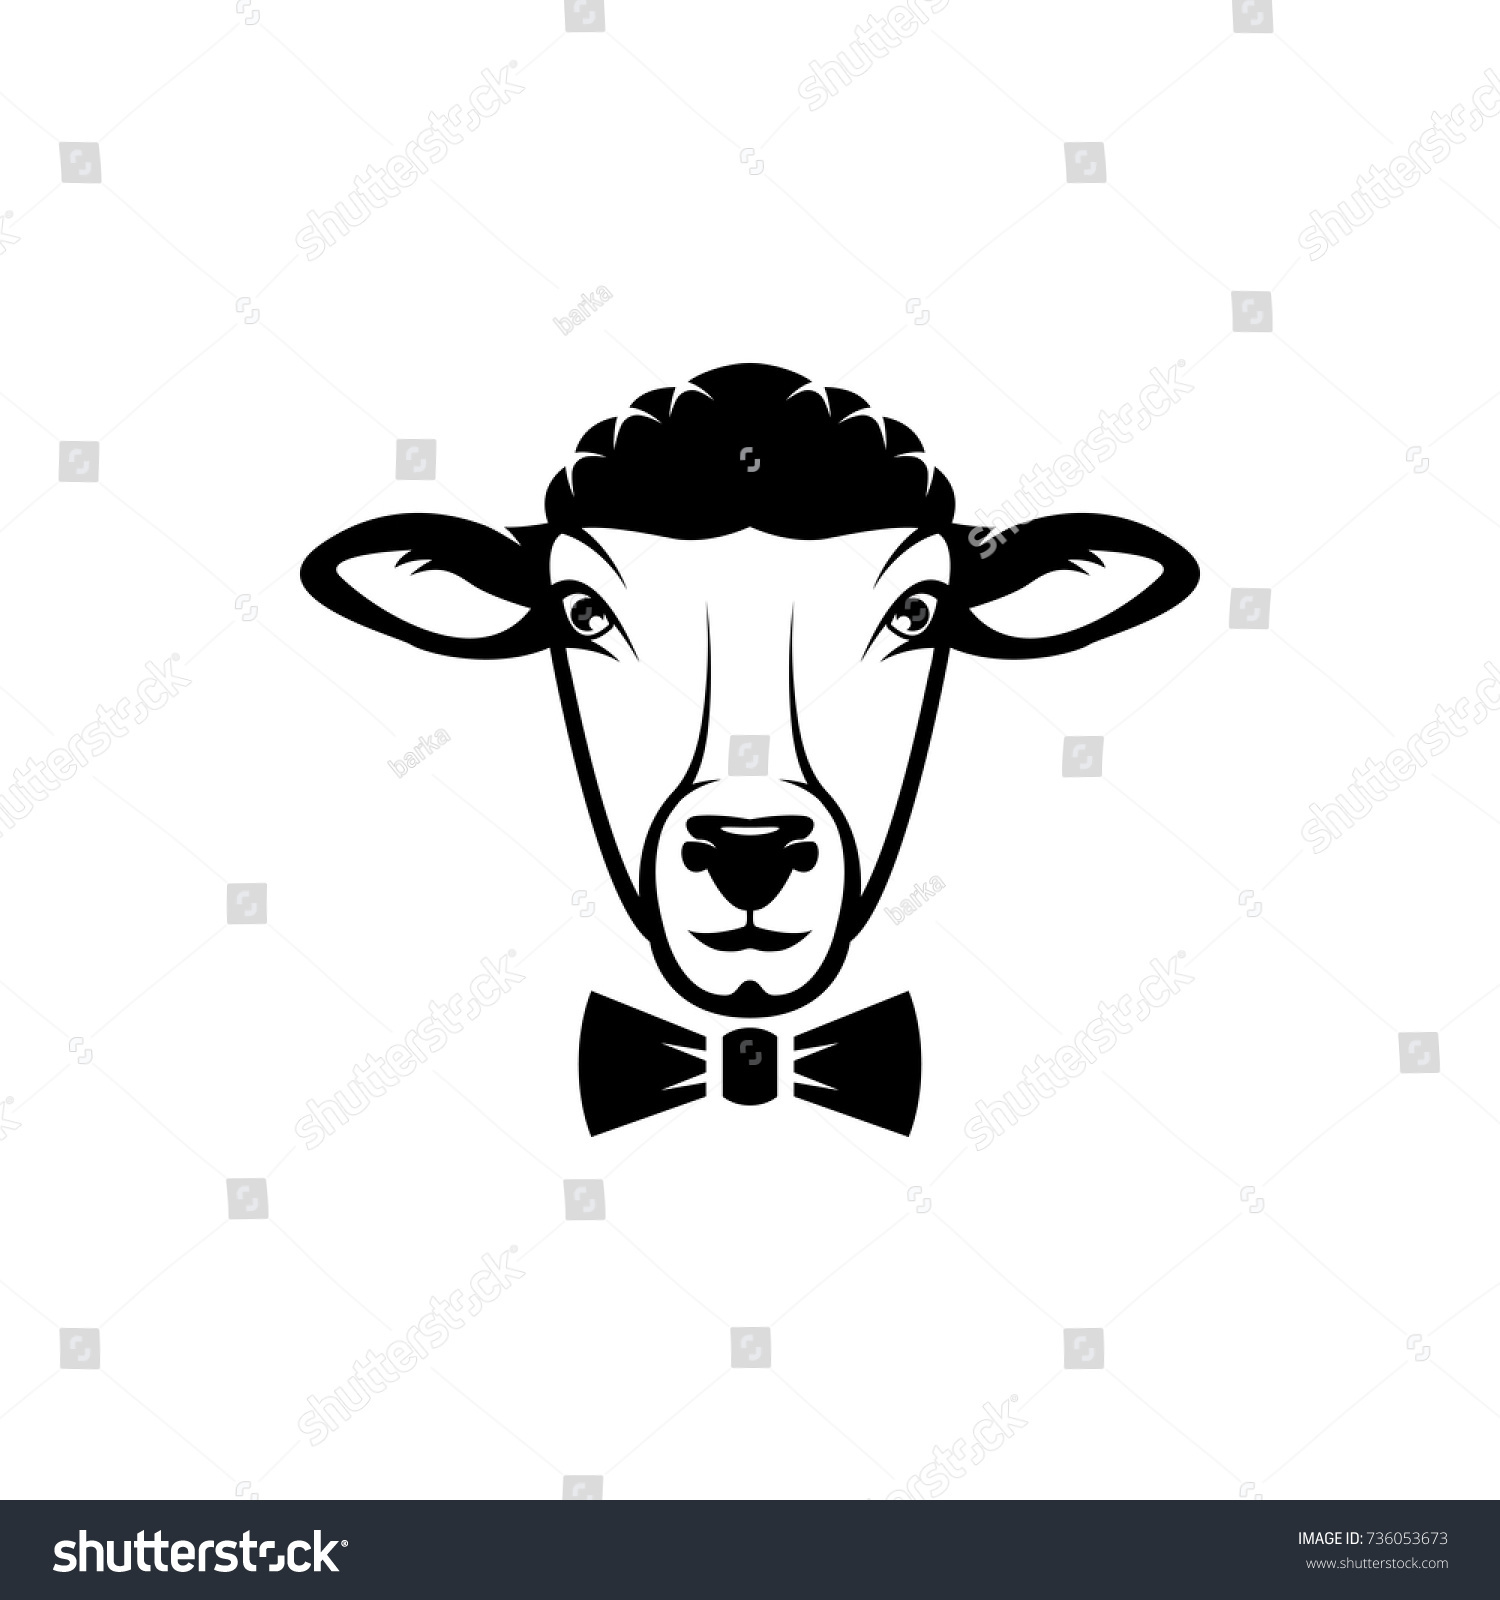 Vector Sheep Head Face Retro Logos Stock Vector (2018) 736053673 ...